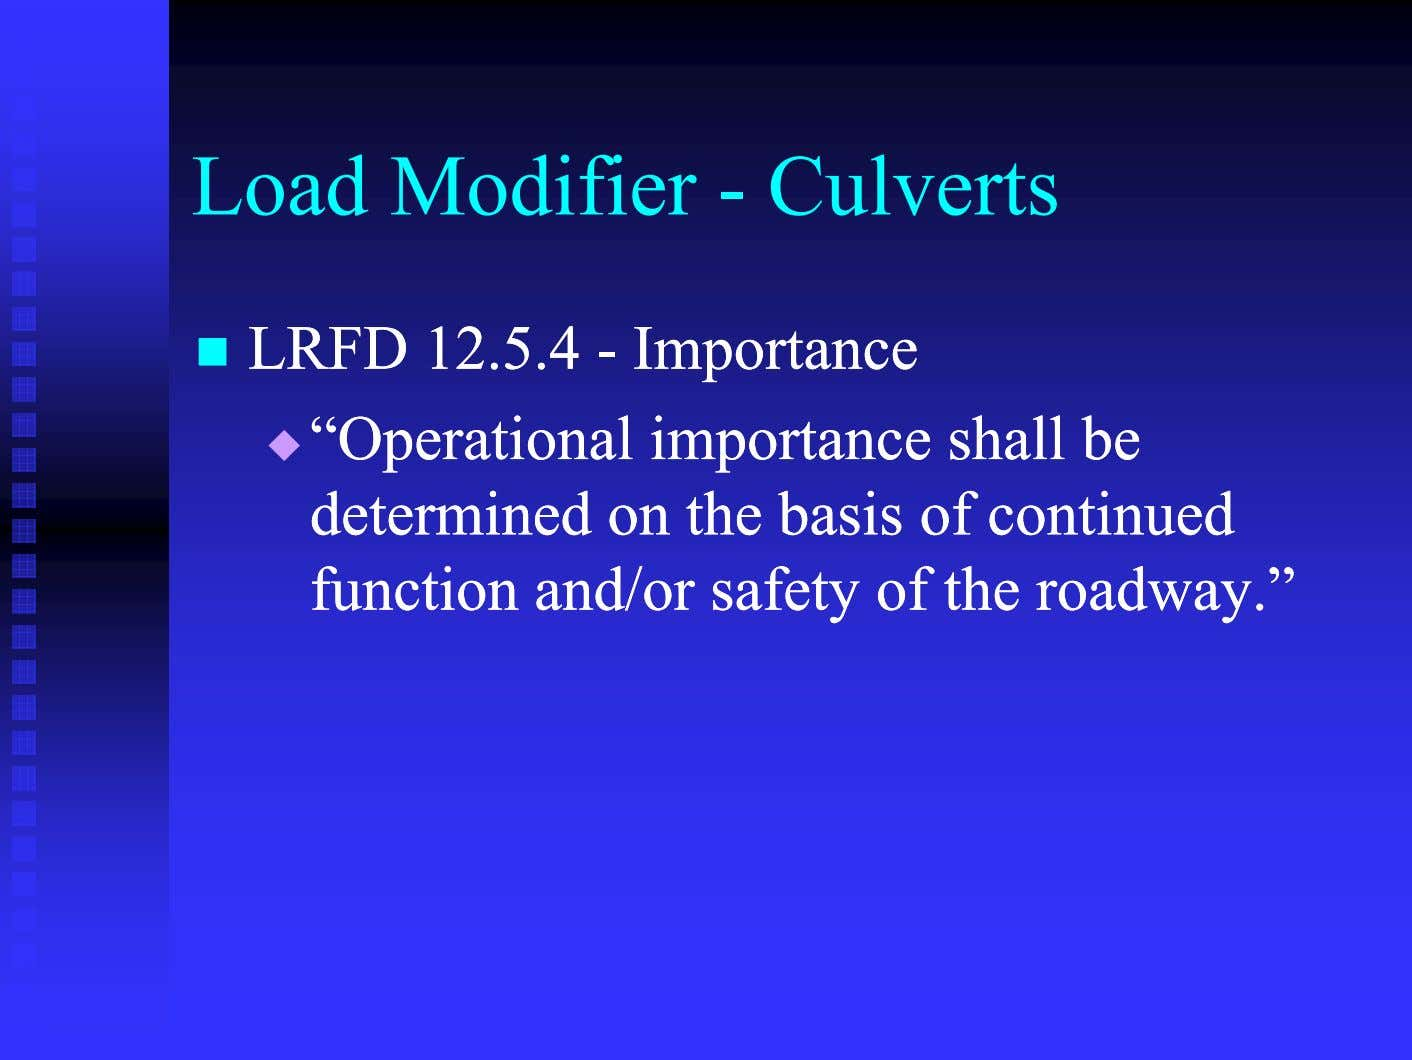 "Load Modifier - Culverts  LRFDLRFD 12.5.412.5.4 -- ImportanceImportance  """"OperationalOperational"